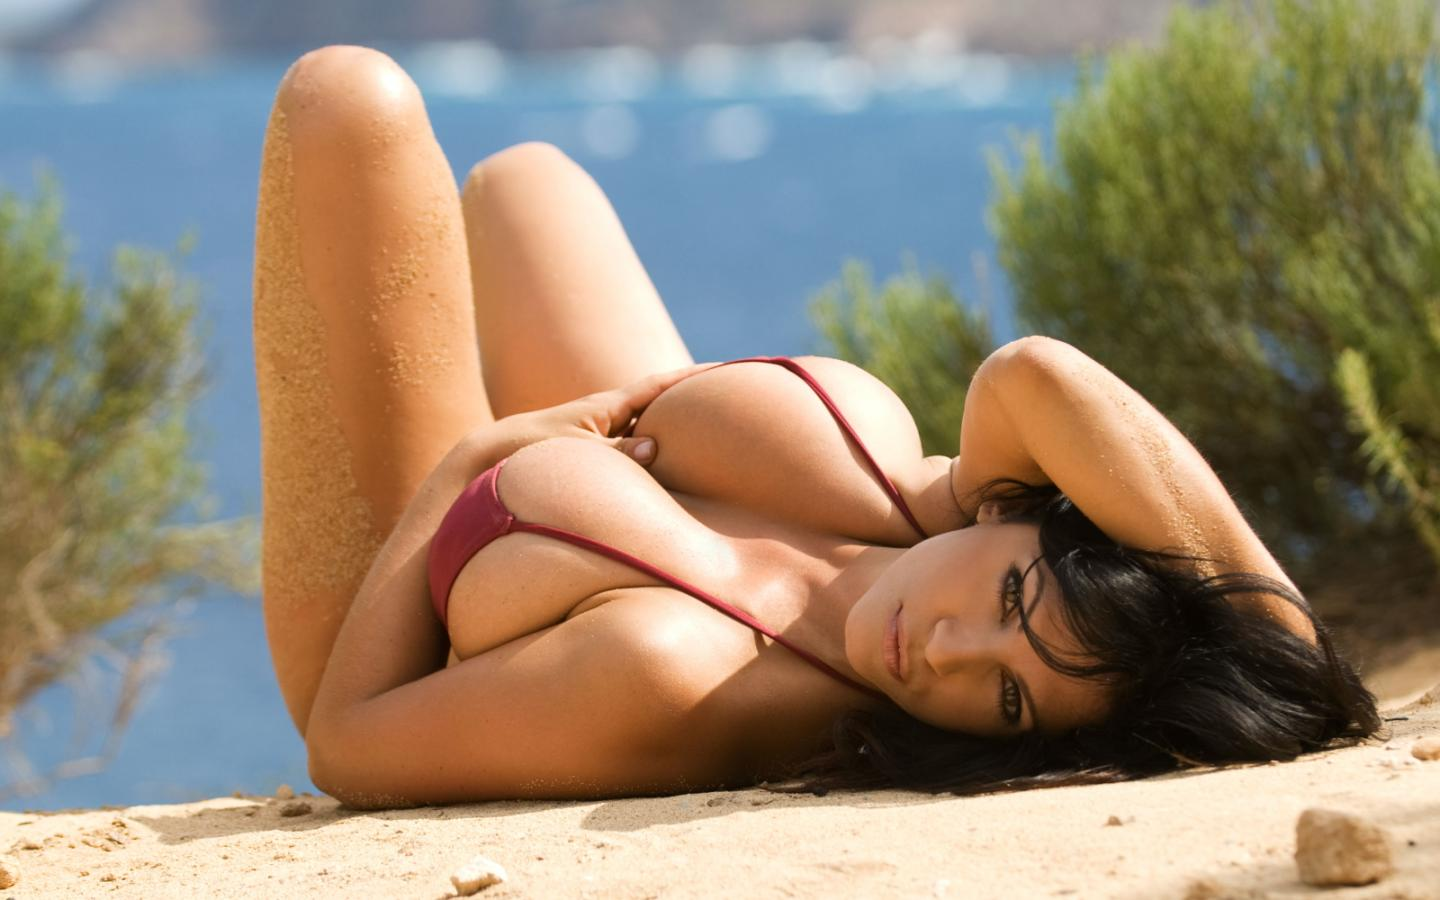 Sorry, that Beach girls hd porn